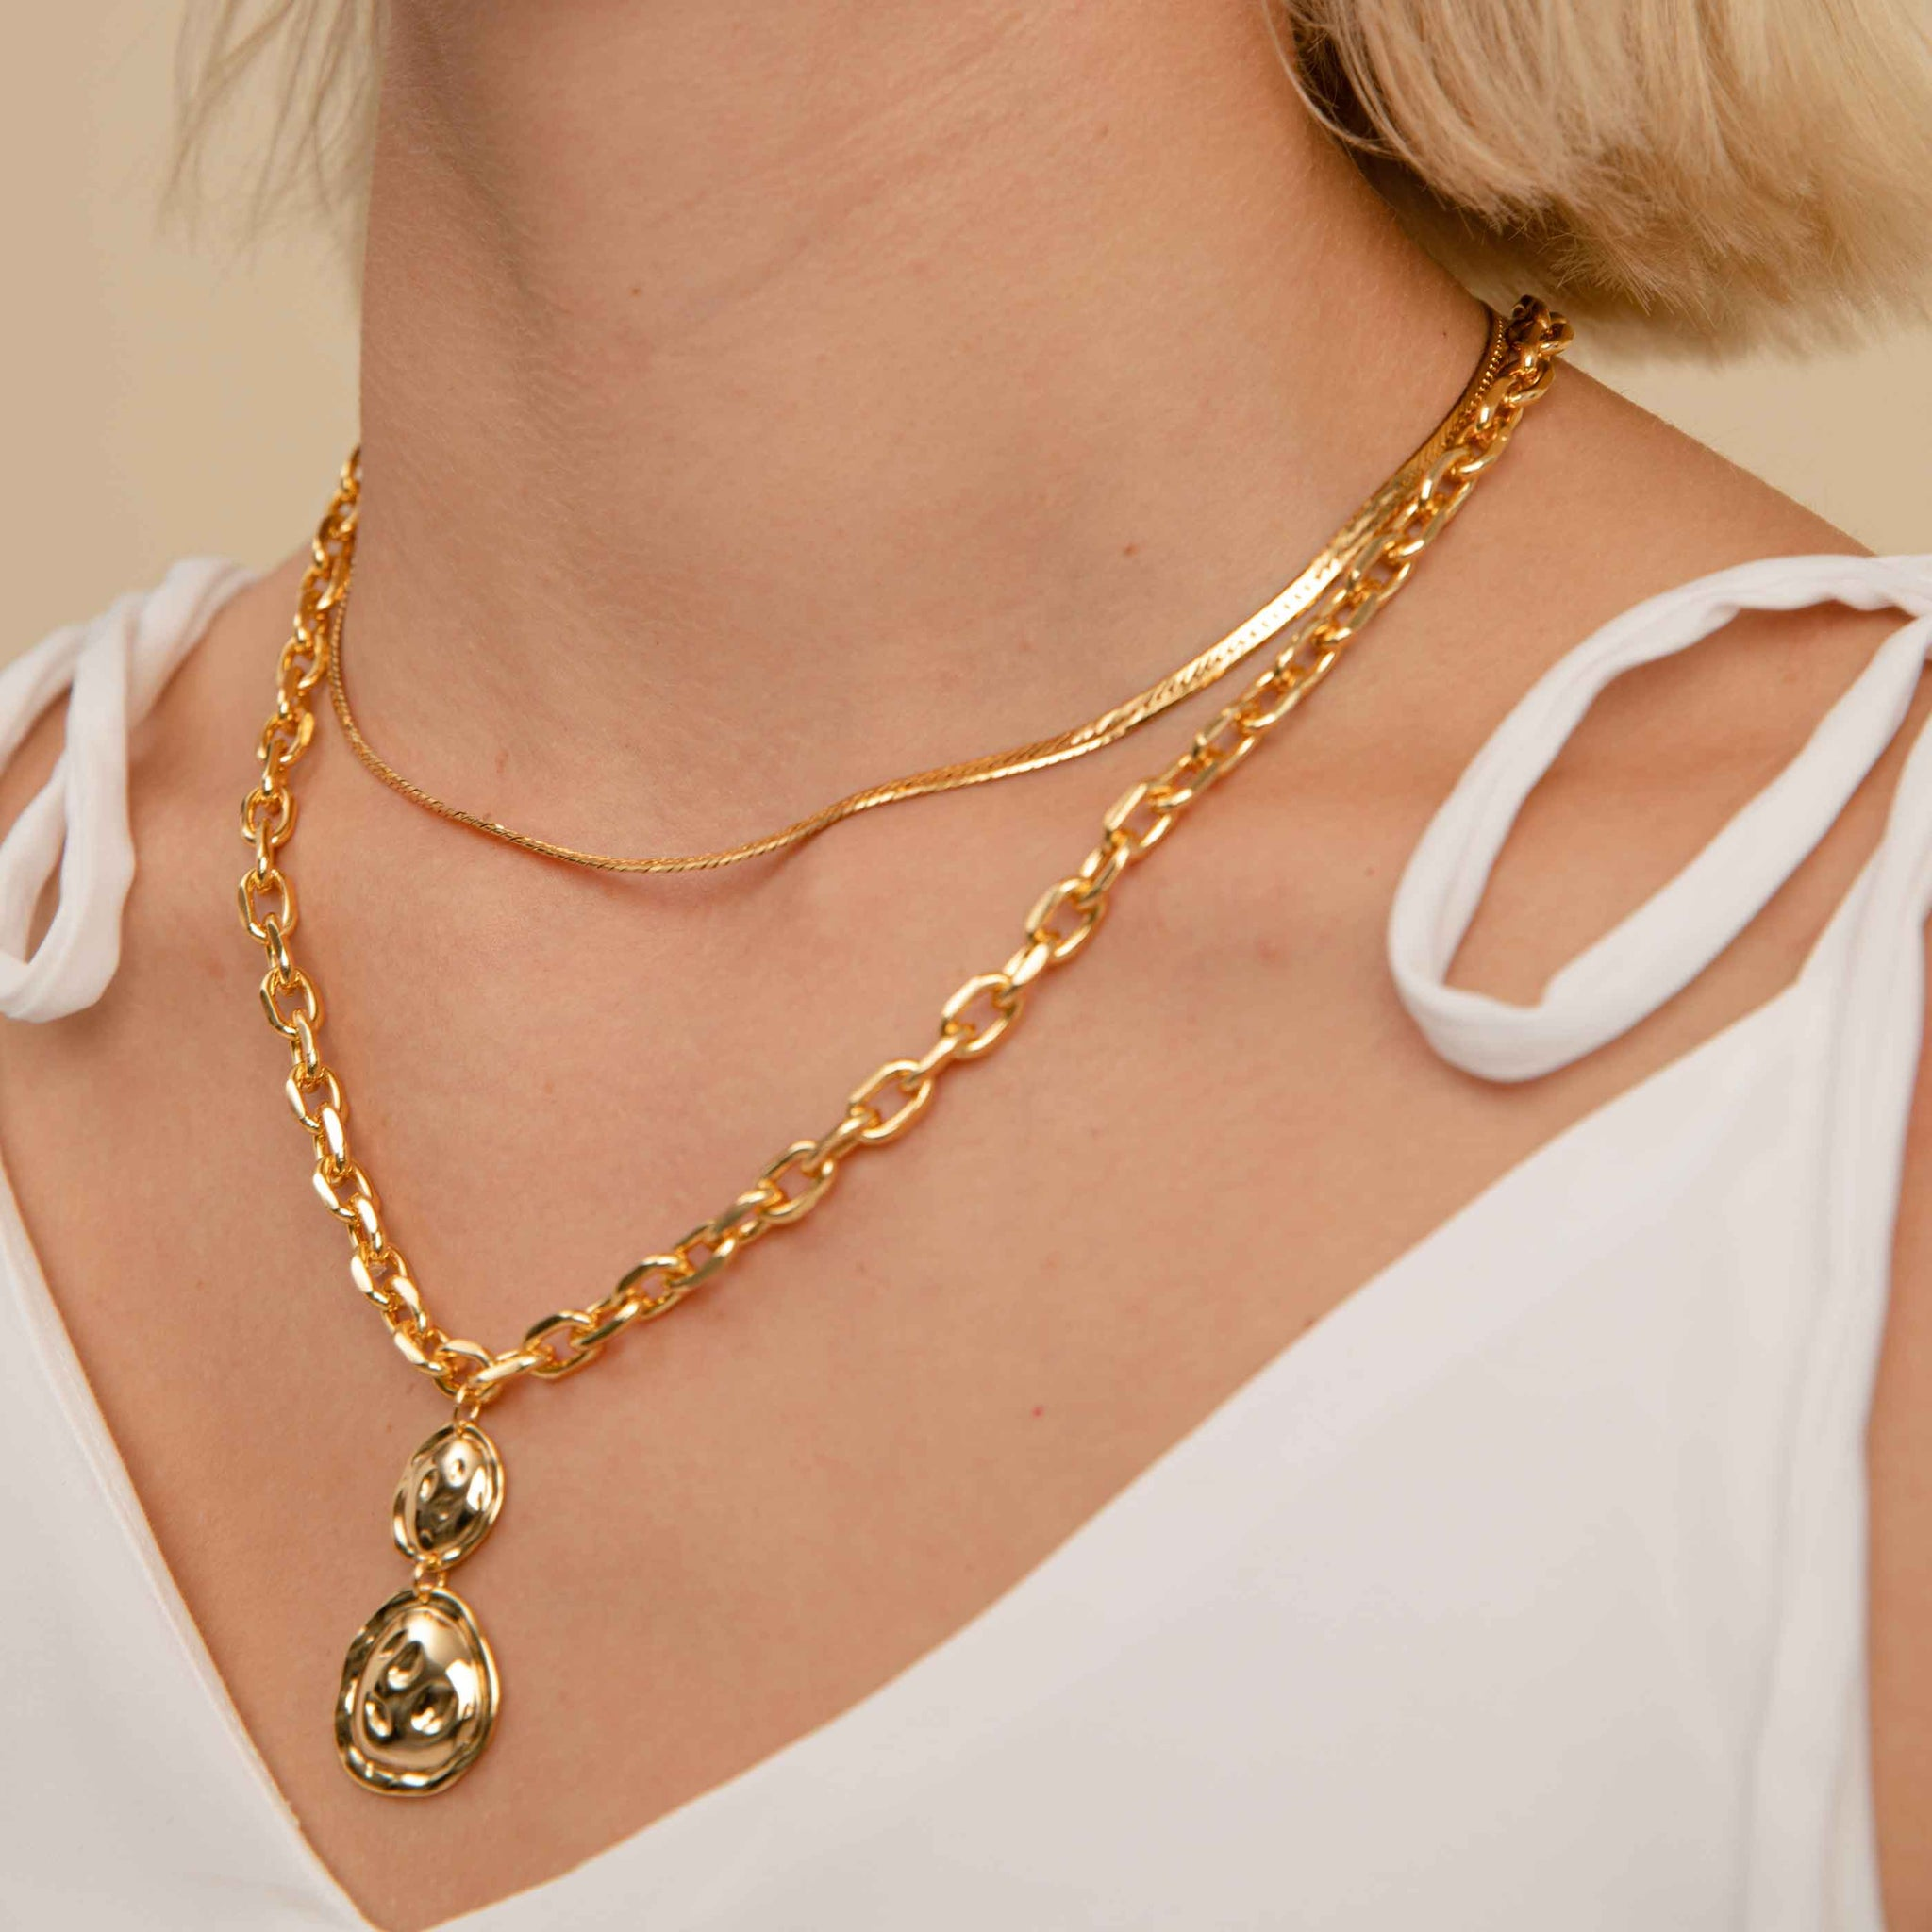 Snake Chain Necklace in Gold worn with chunky pendant necklace